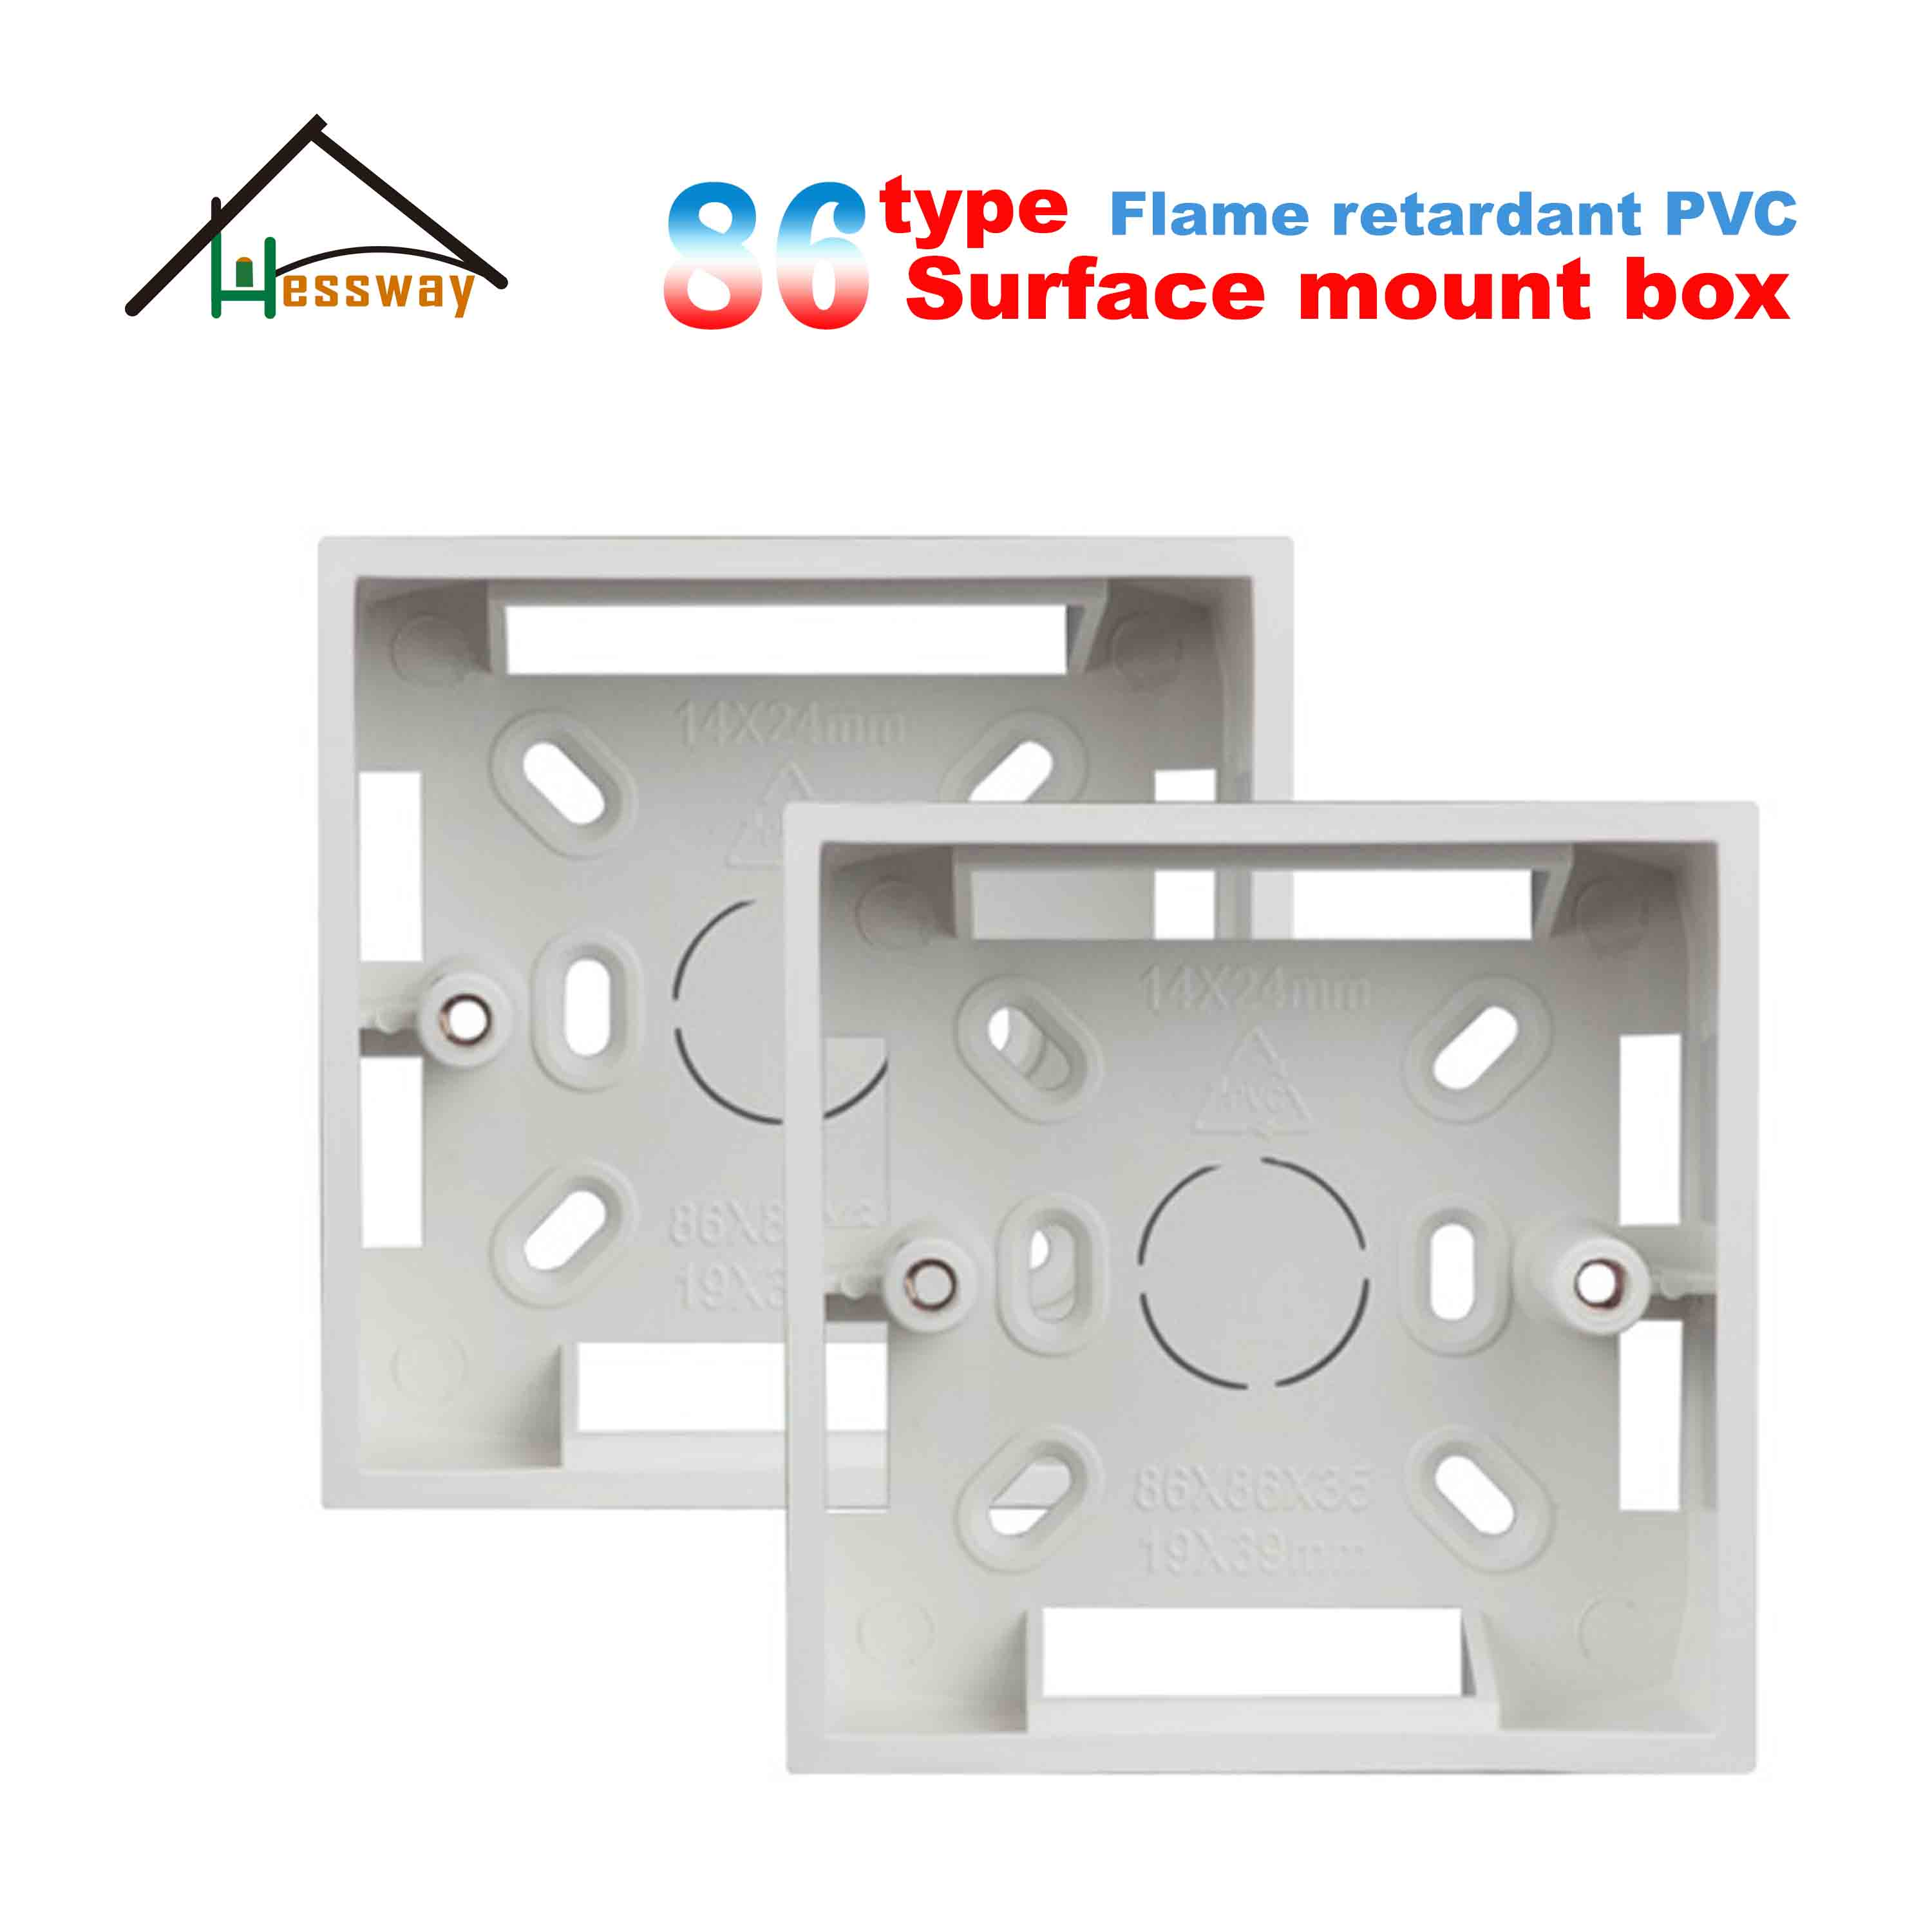 86 Type Wall Surface Mount Box For Size 86*86*35